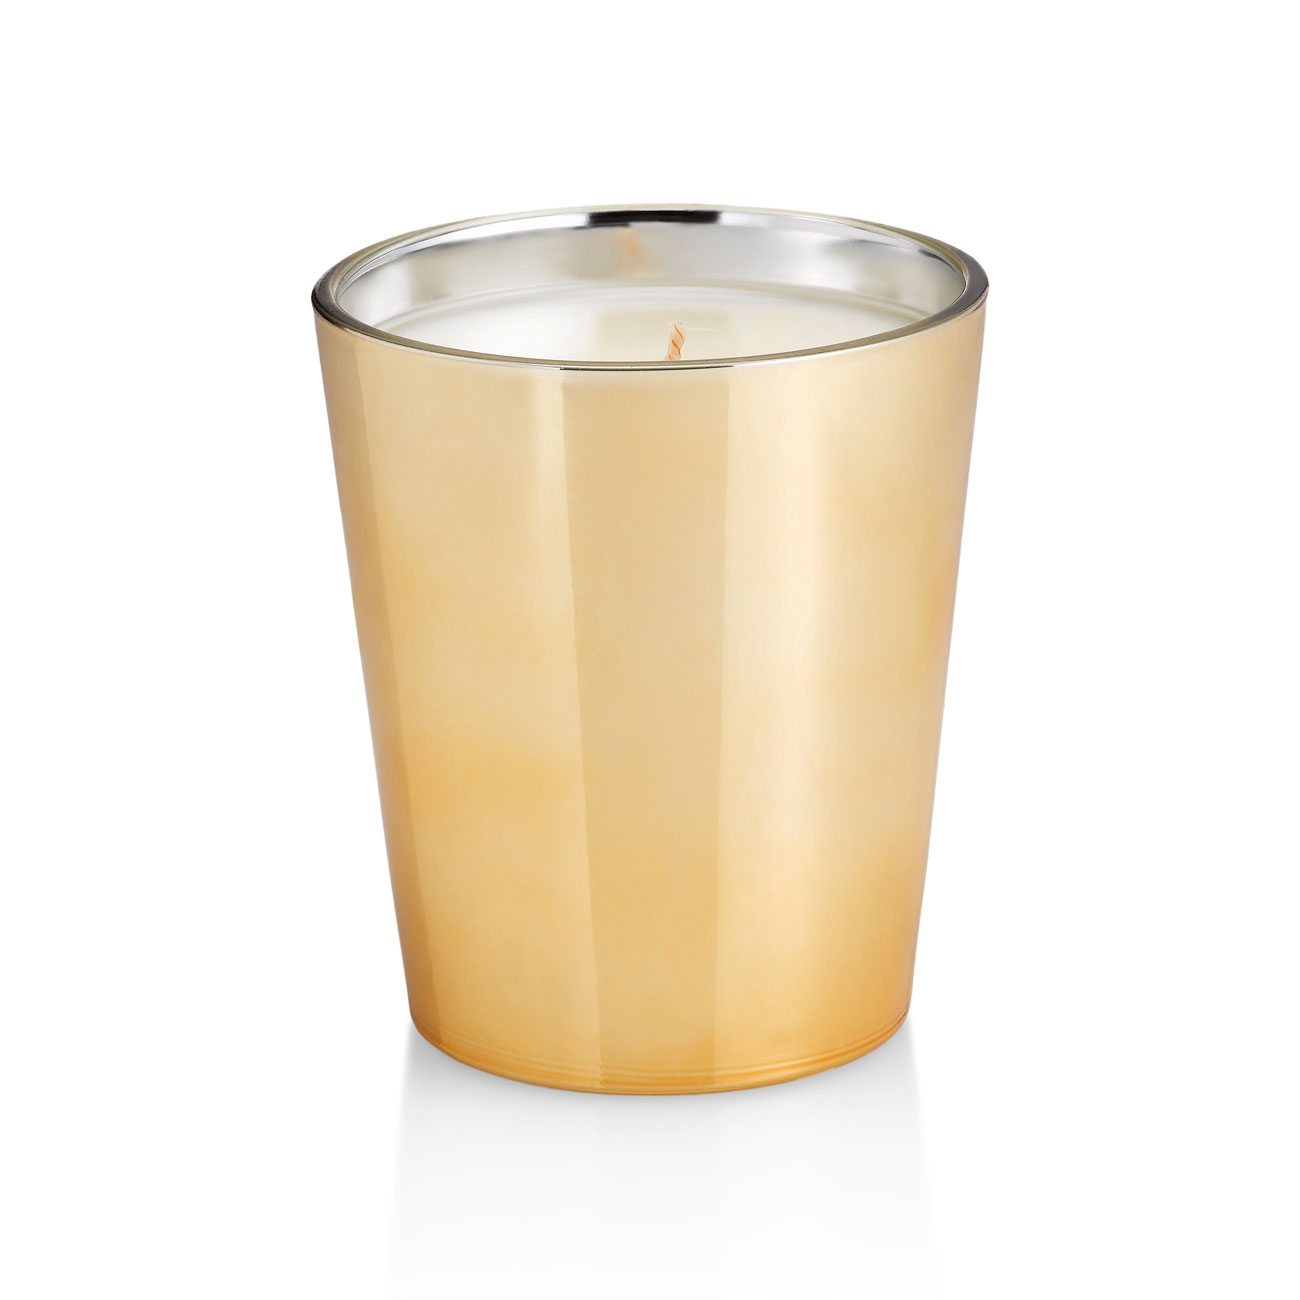 Ralph lauren classic scented candles pied a terre for What are the best scented candles to buy